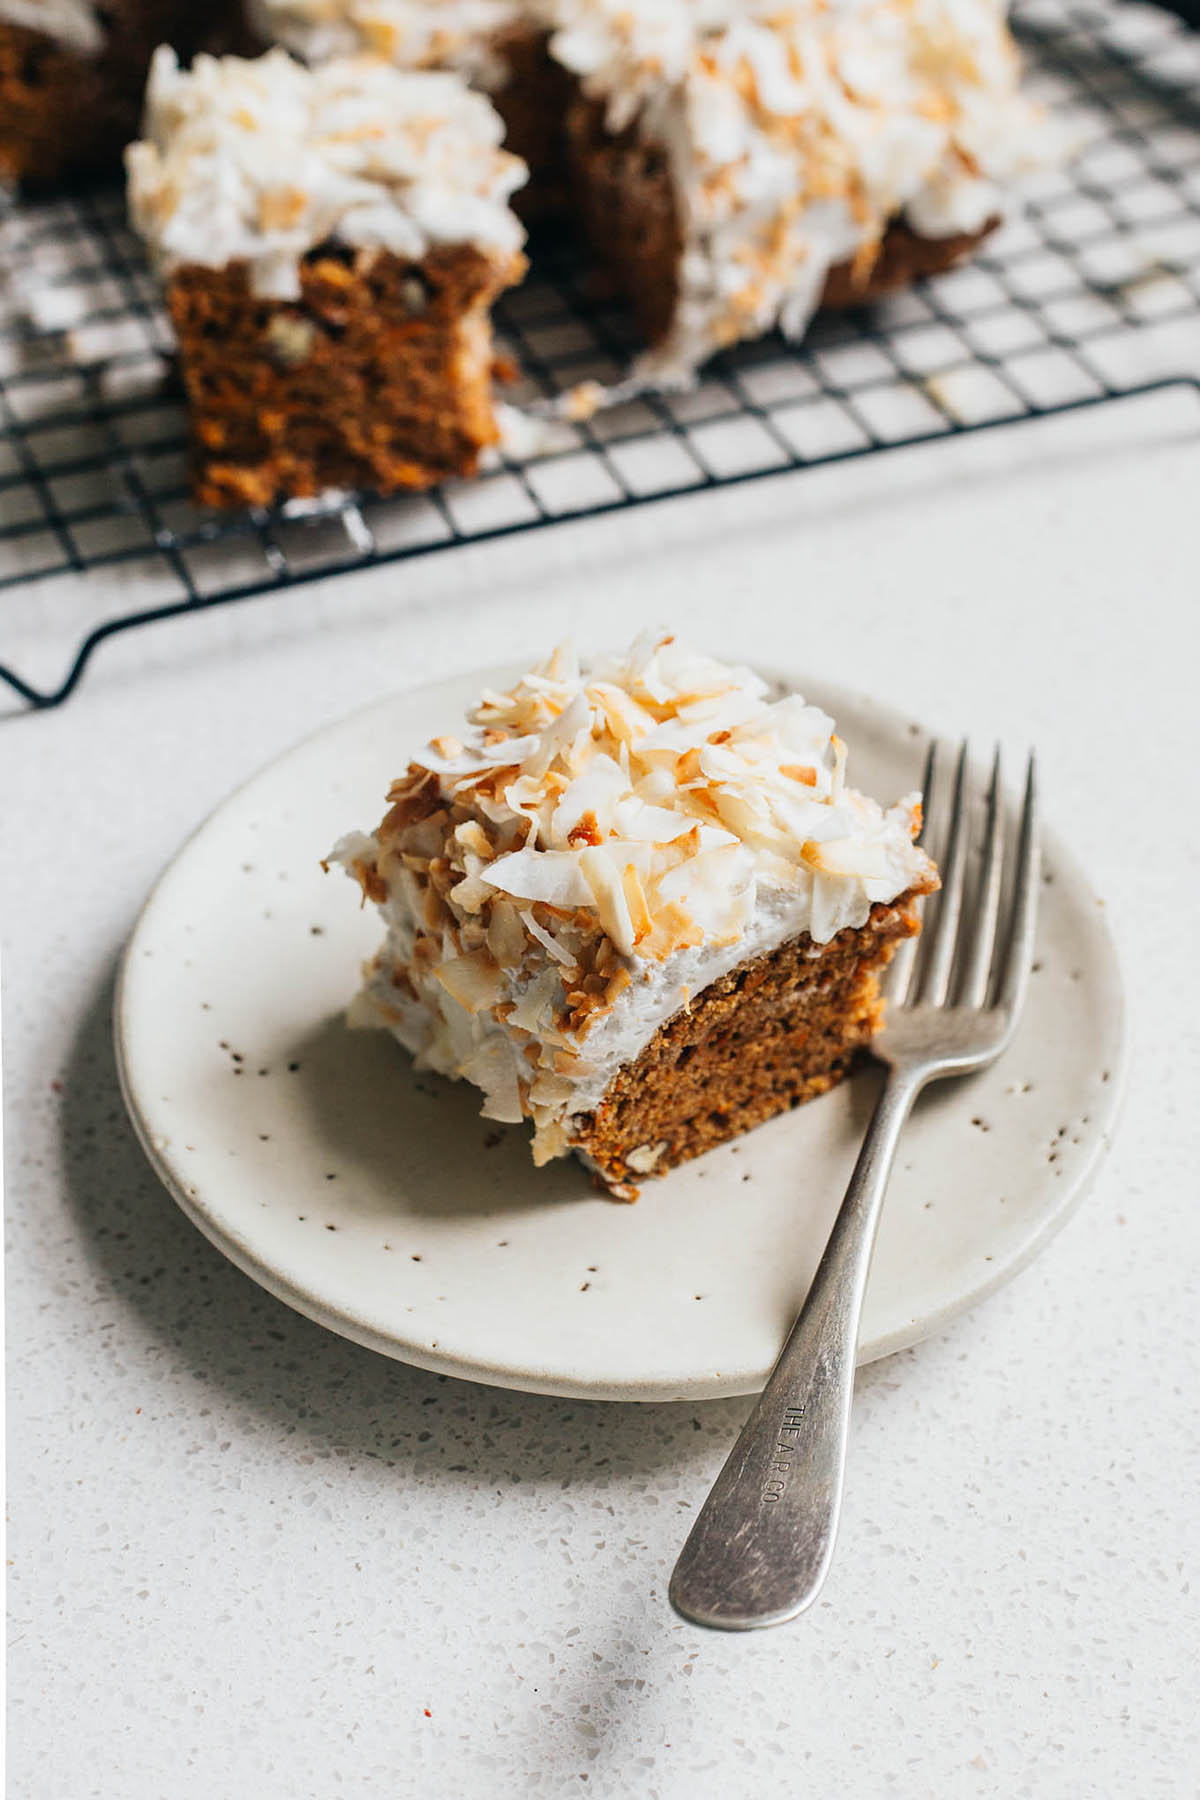 Square of carrot cake with icing on a small plate with fork, with more cake in the background.